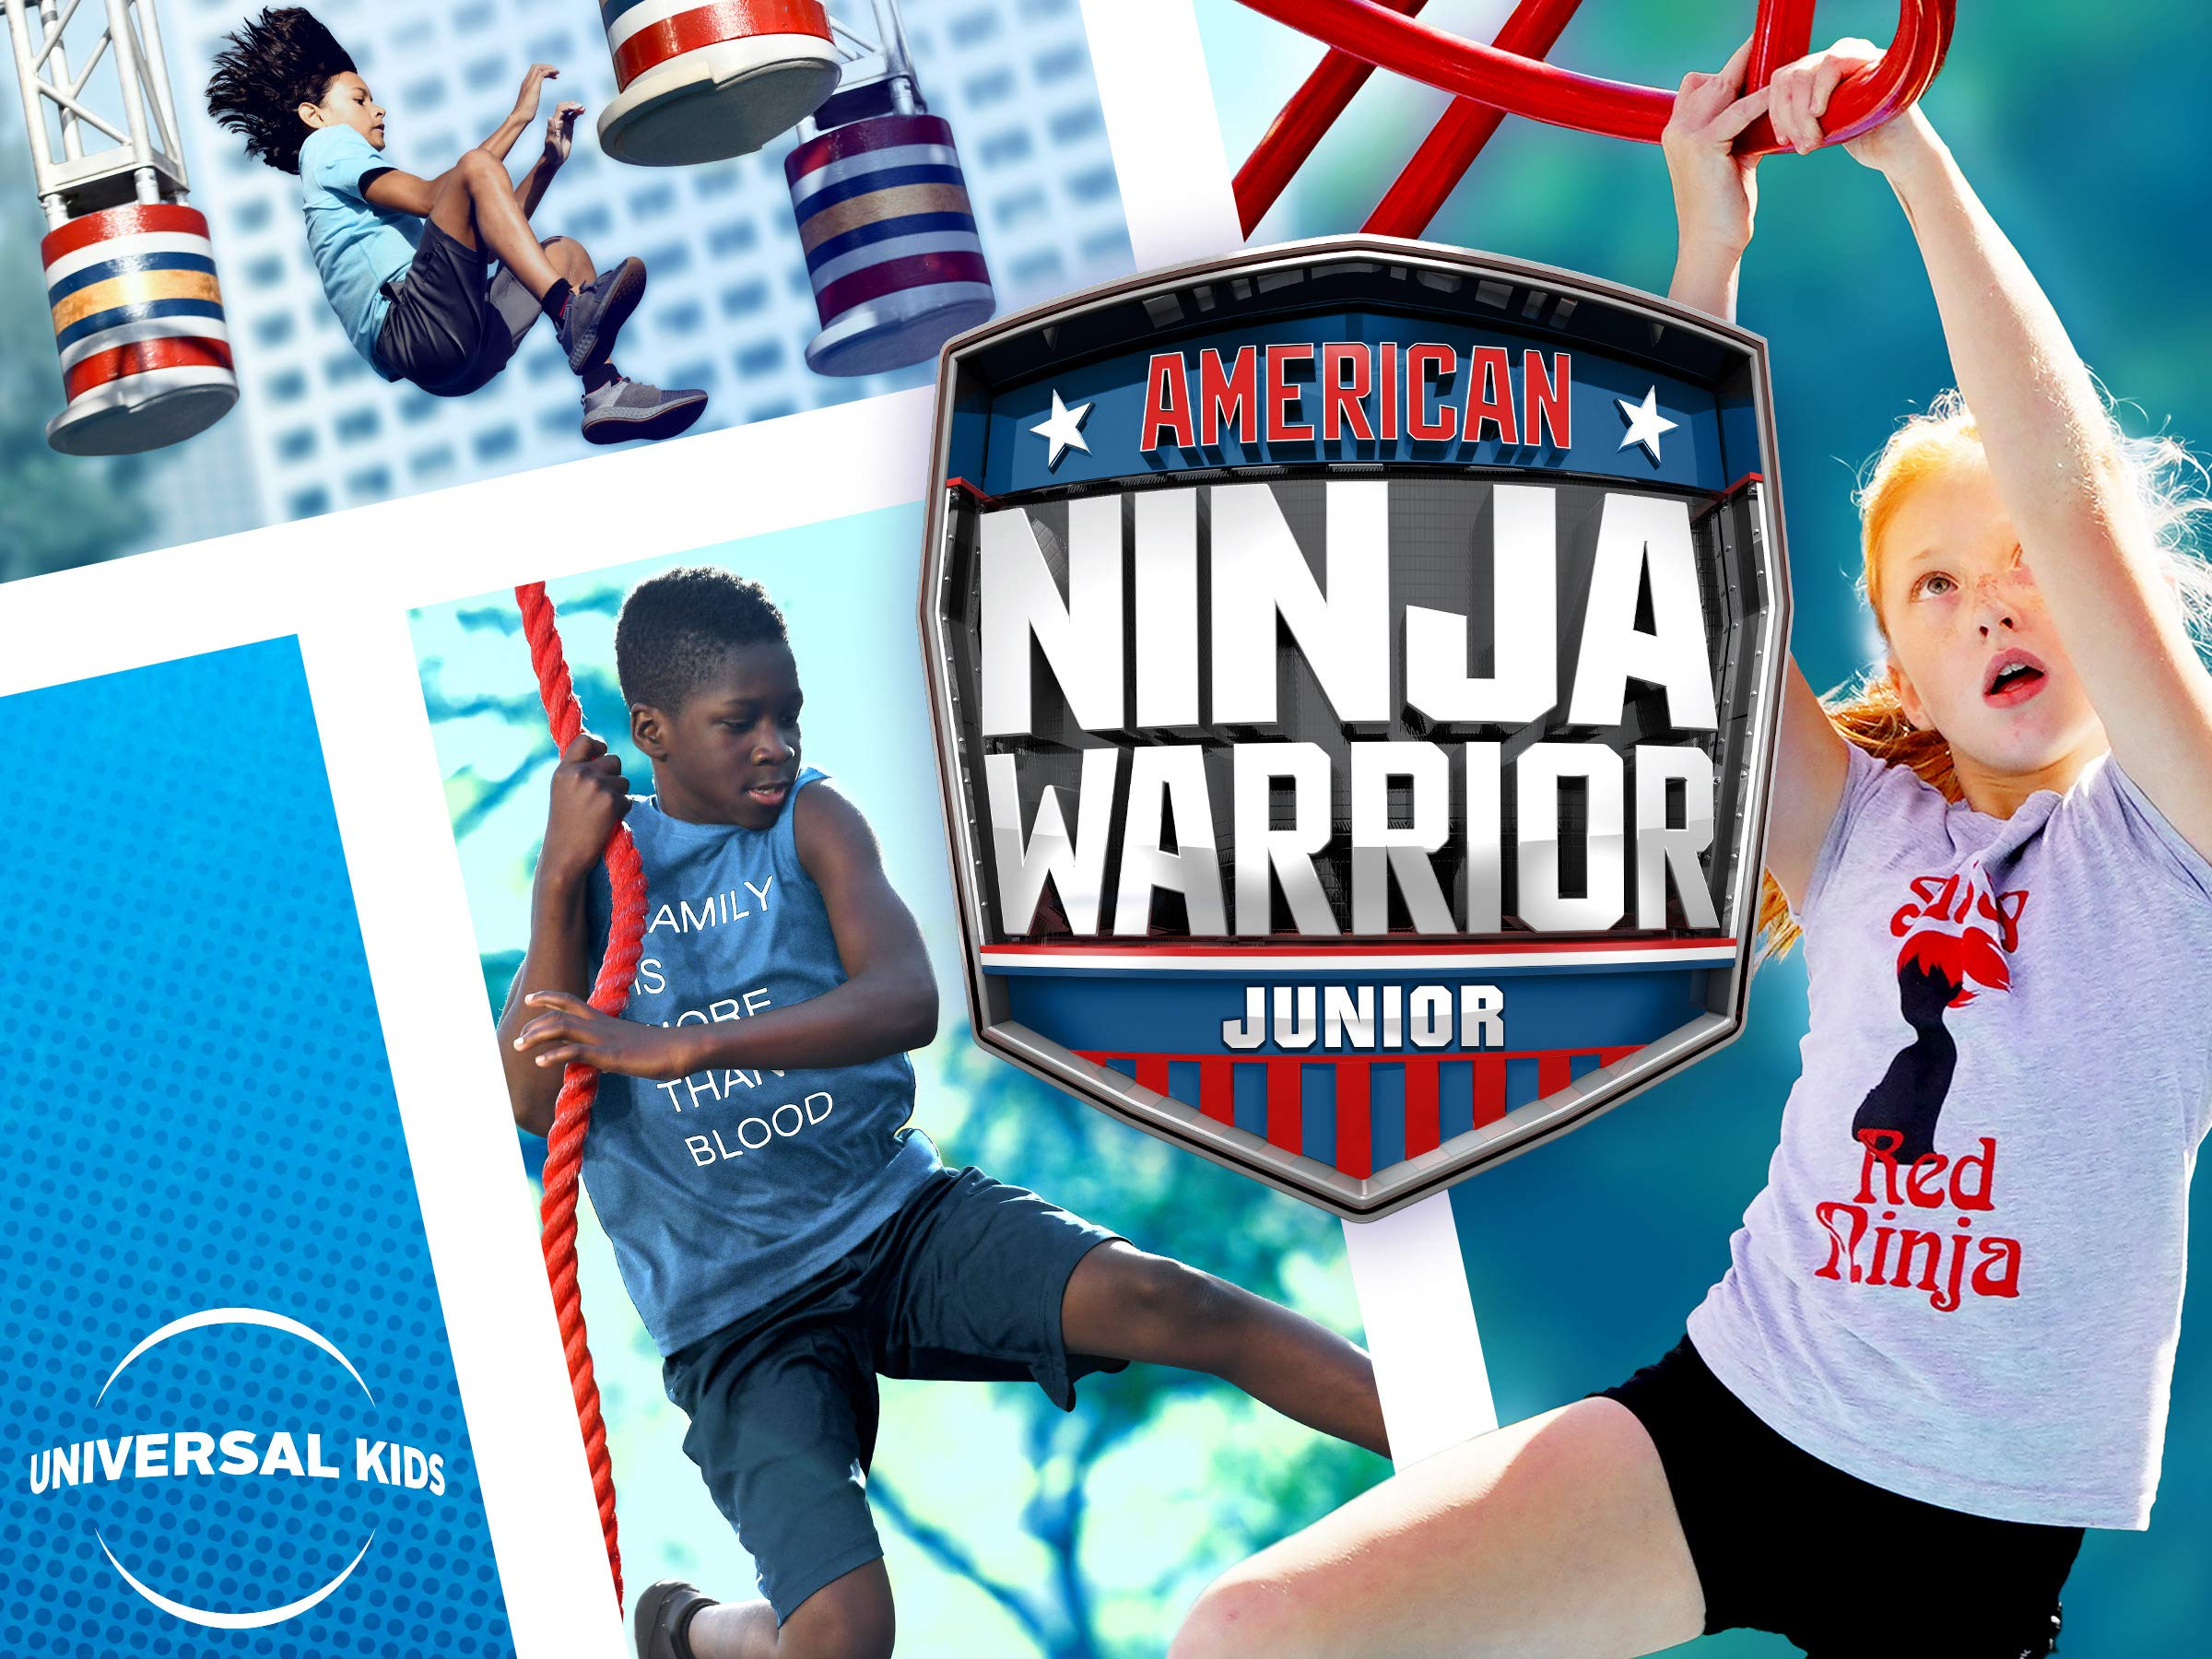 Amazon.com: Watch American Ninja Warrior Junior, Season 1 ...